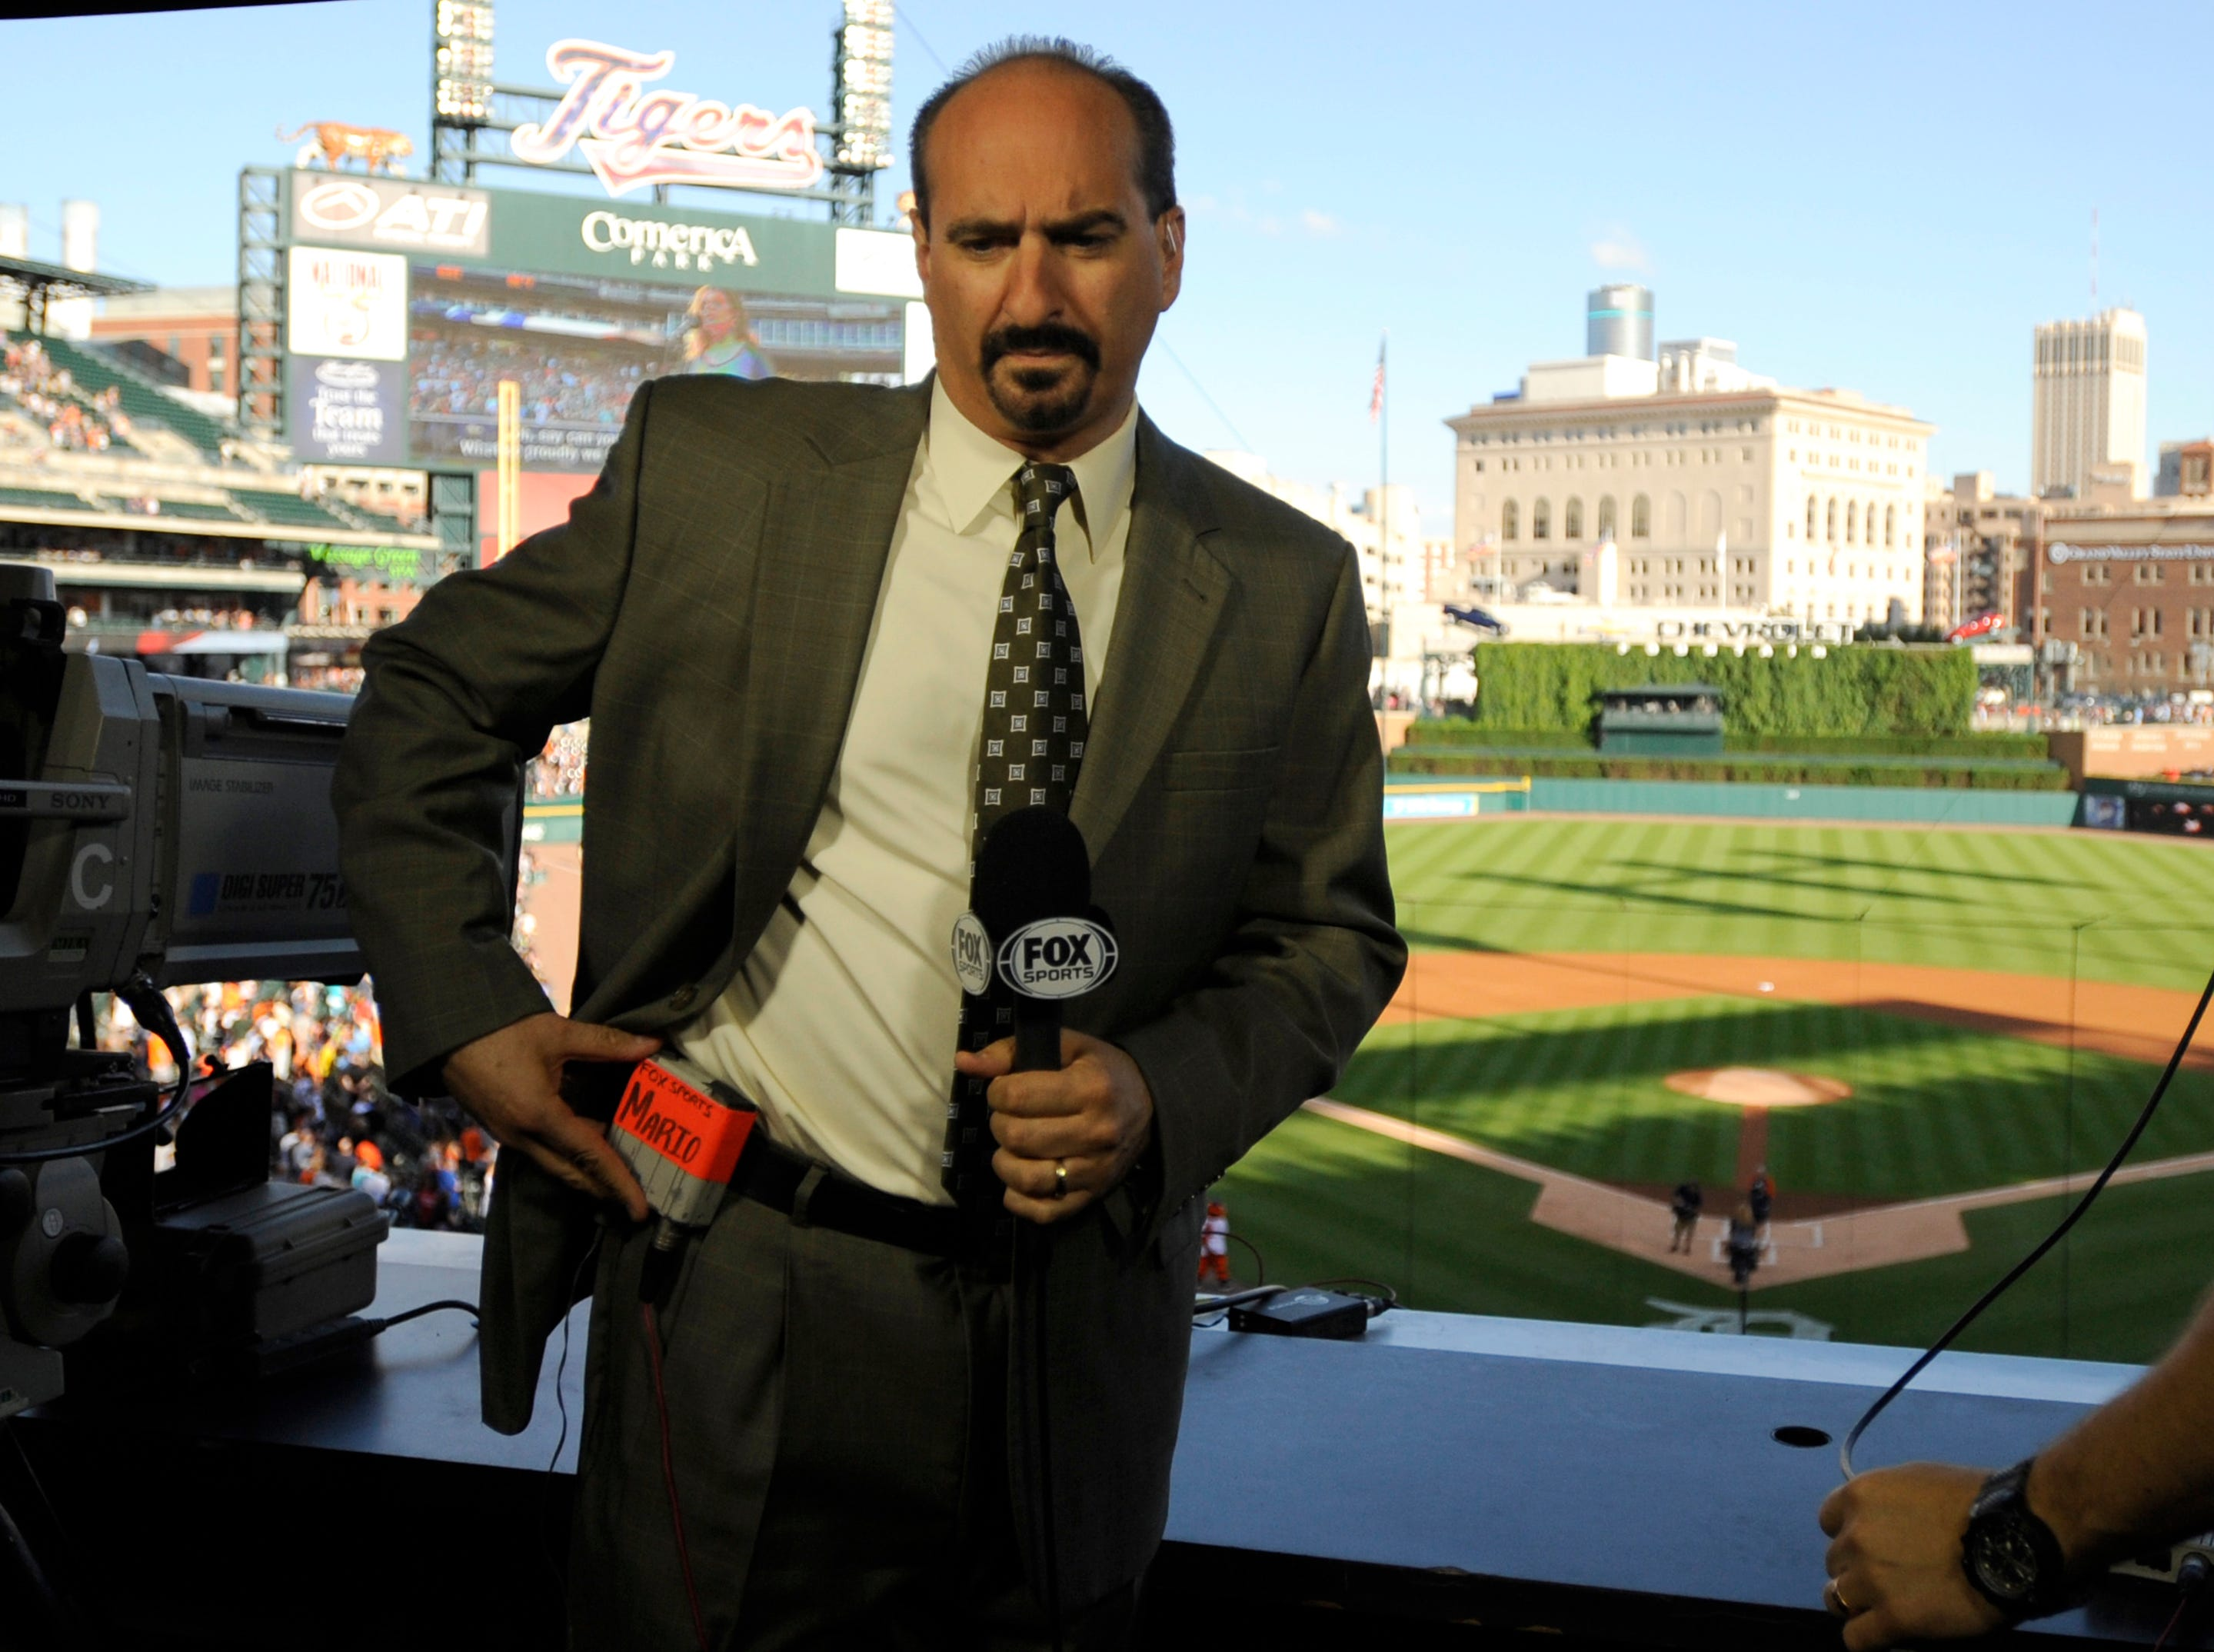 In 2002, the Tigers and Fox Sports Detroit hired Metro Detroit native and Michigan State alum Mario Impemba, whose dream job always was to call Detroit Tigers games. That first season, he worked alongside Kirk Gibson.